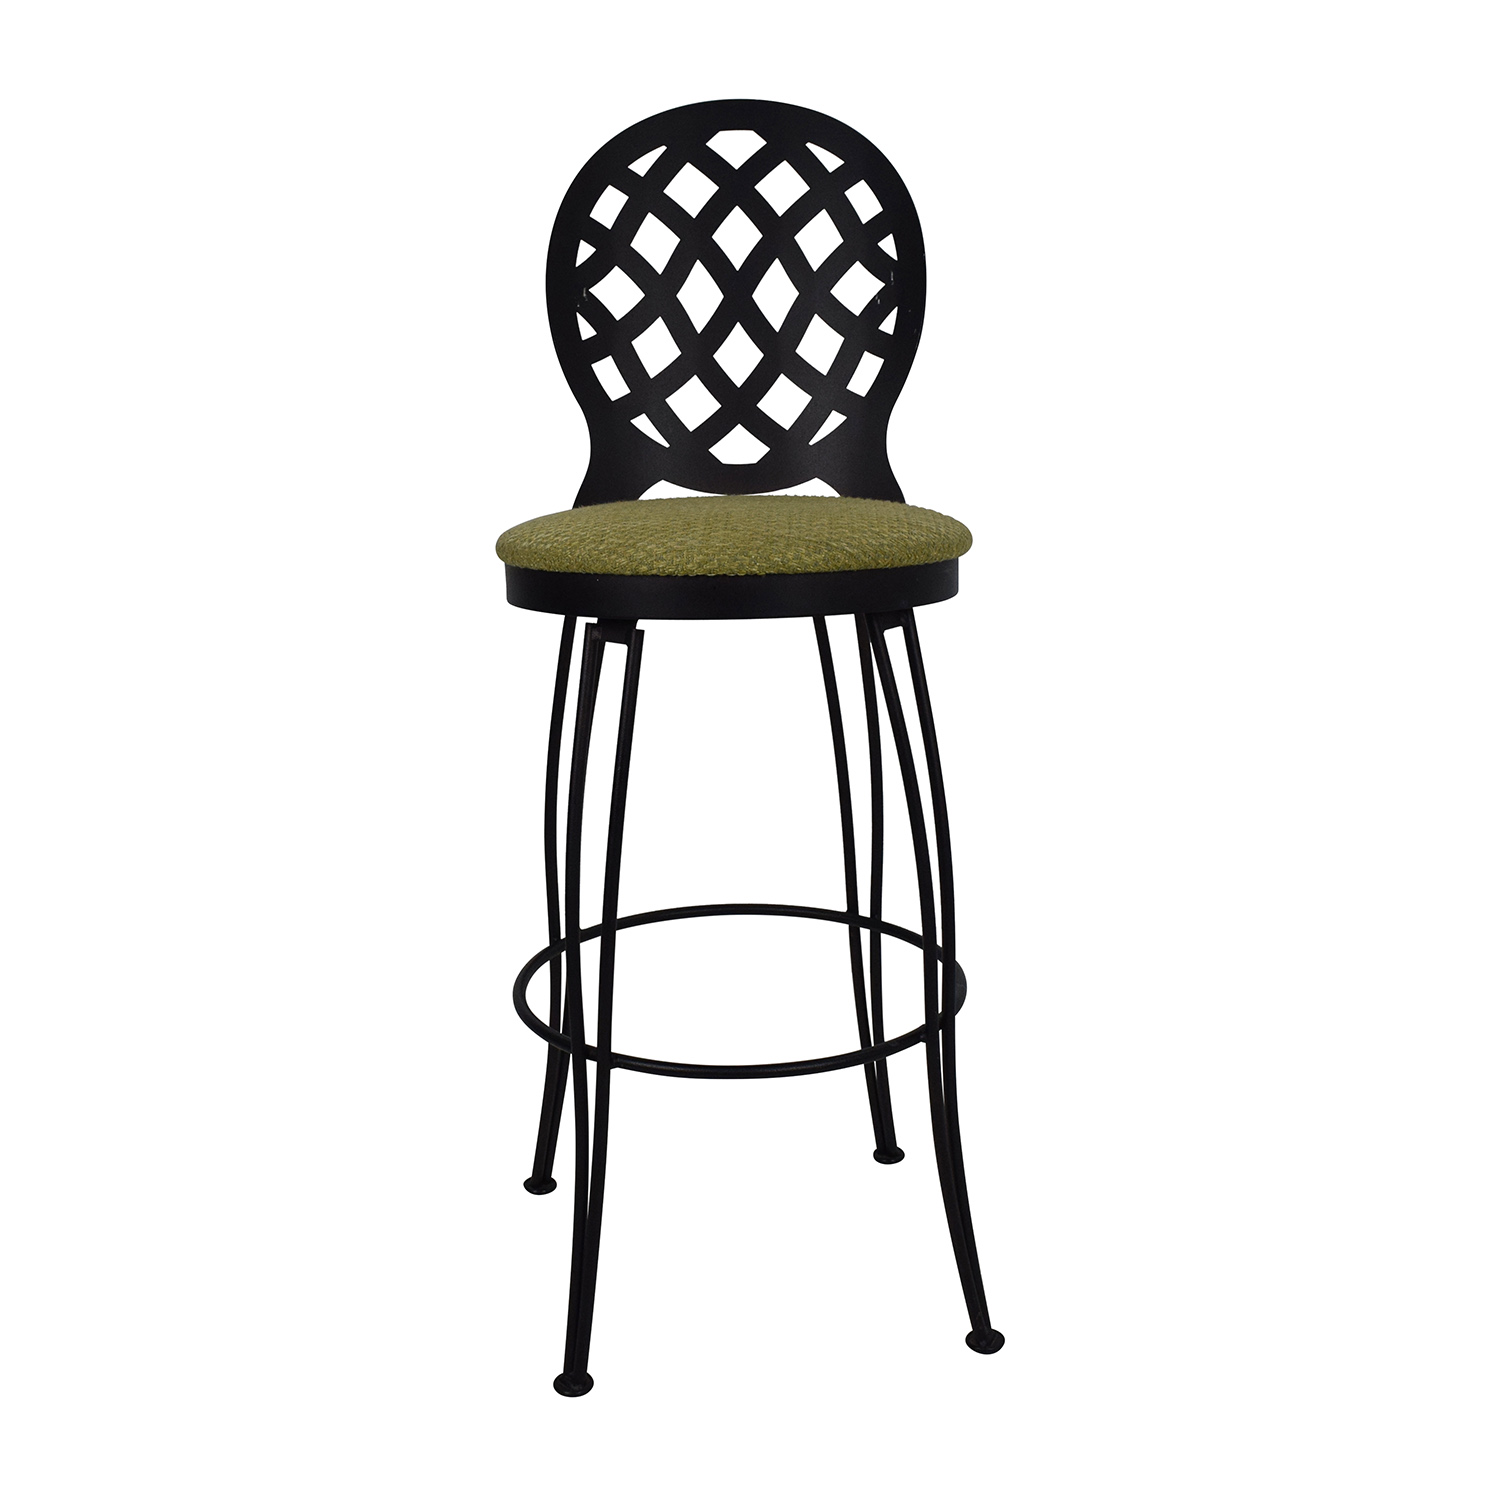 Trica Inc Trice Inc Swivel Bar Chair for sale